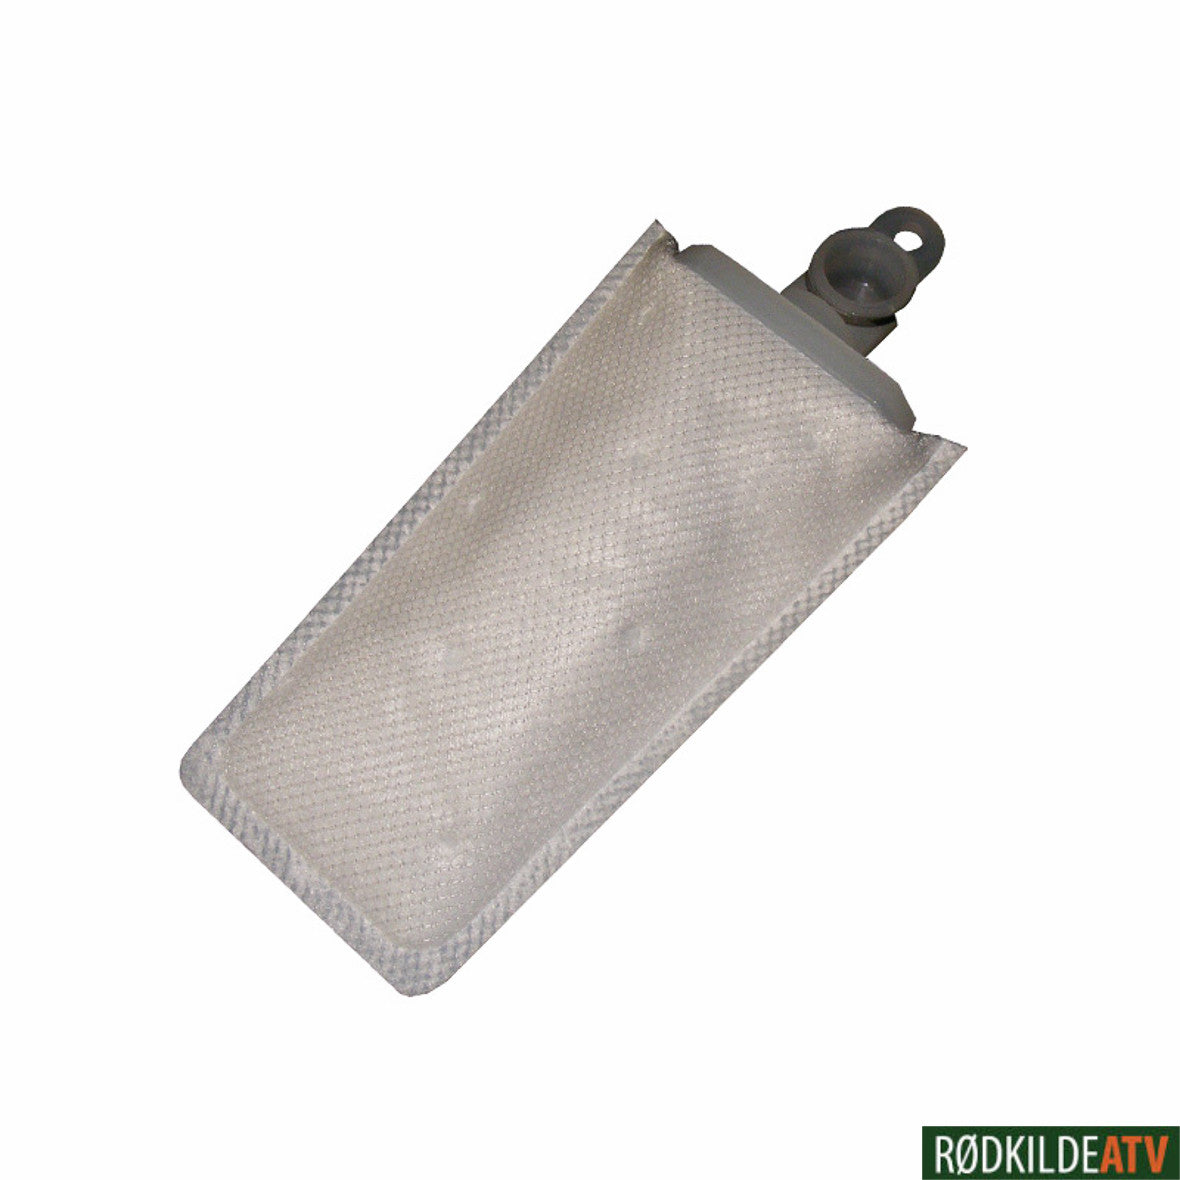 170 6200 - fuel filter - polaris ranger petrol to suit 170 6100 - rødkilde  atv